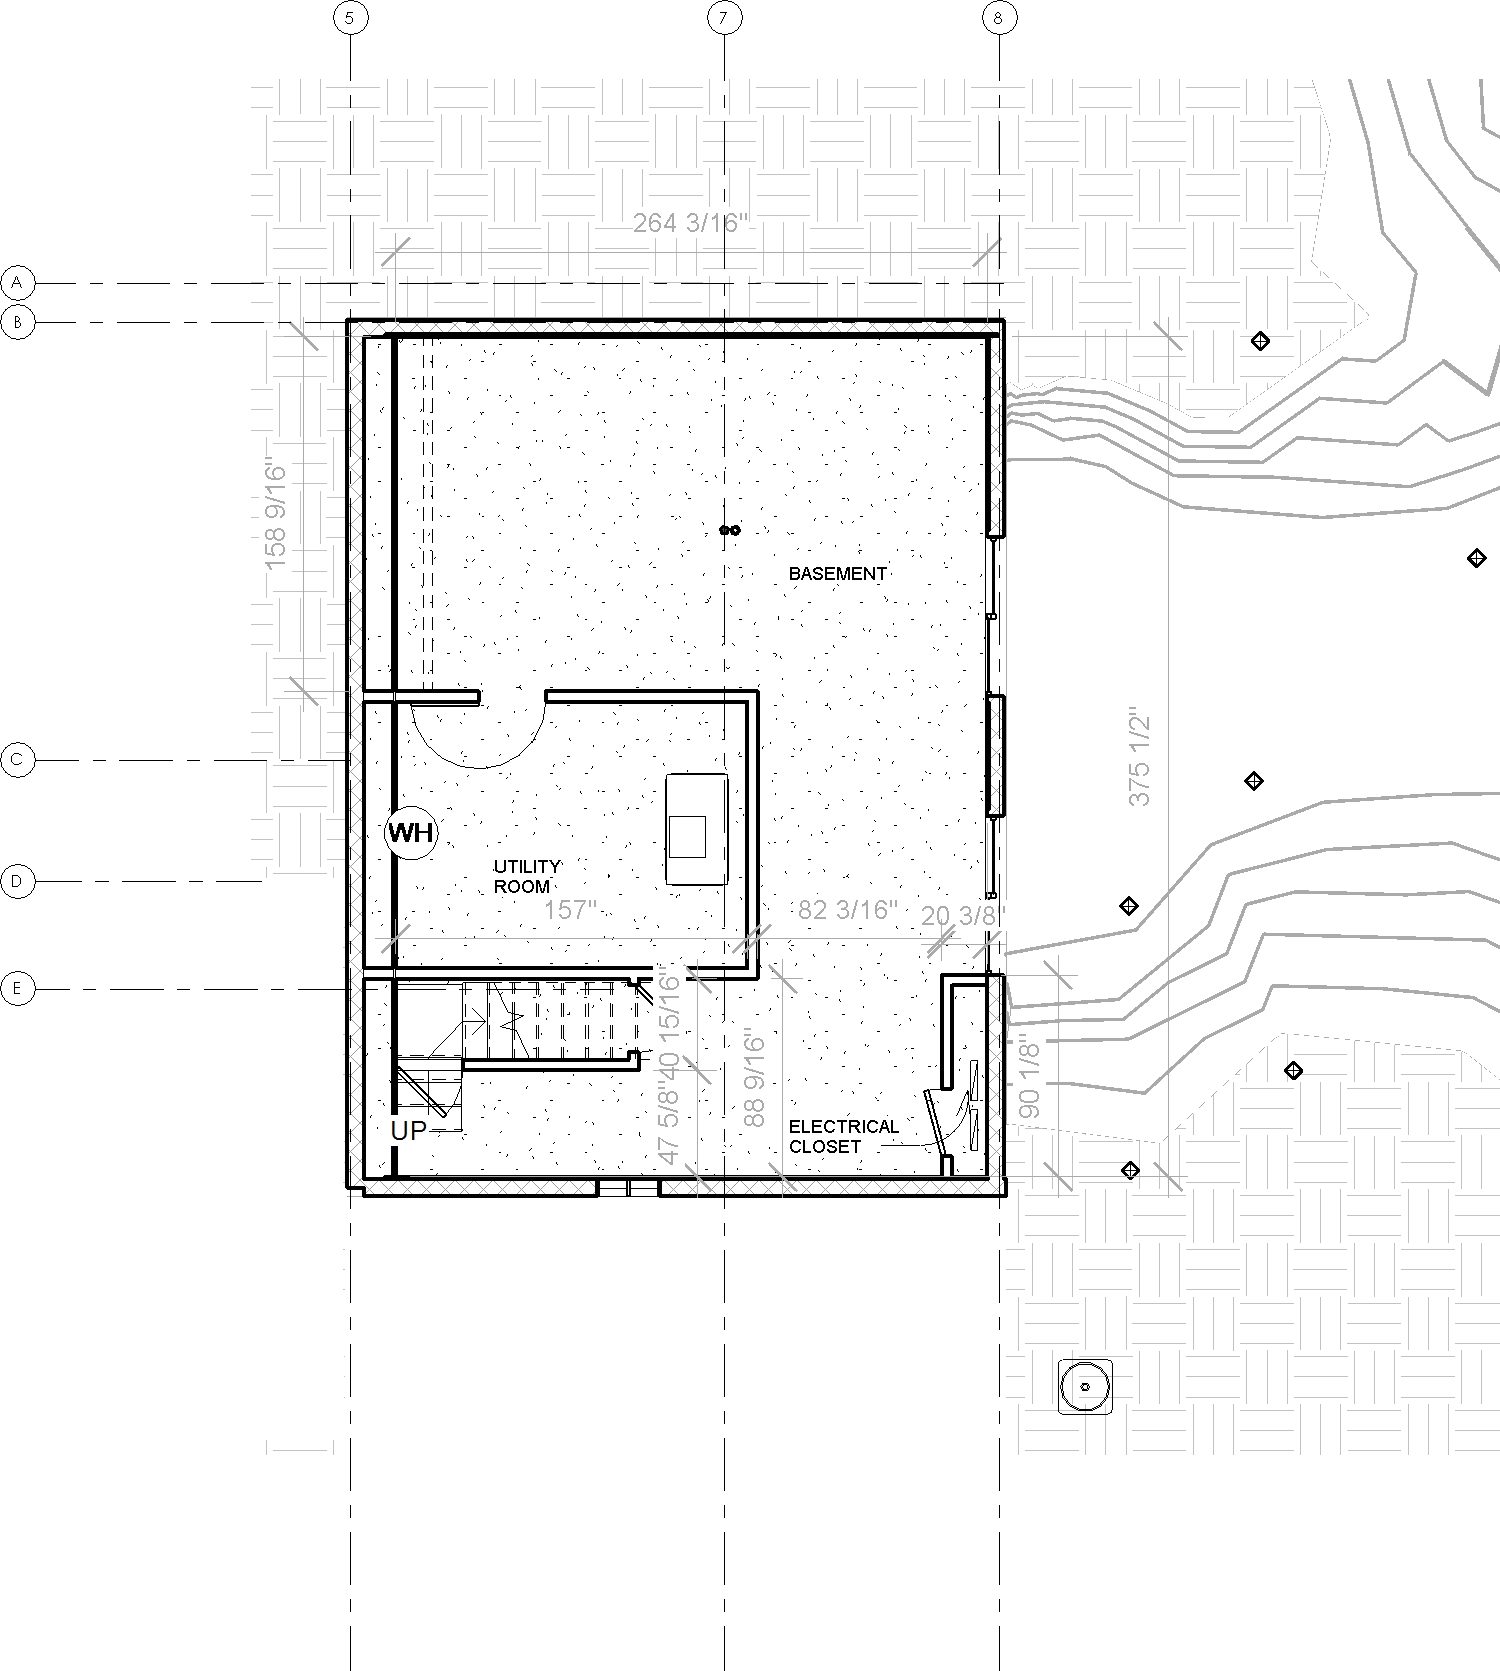 2014-03 914 Coachway_Central_09-EXISTING - Floor Plan - Basement Existing.jpg